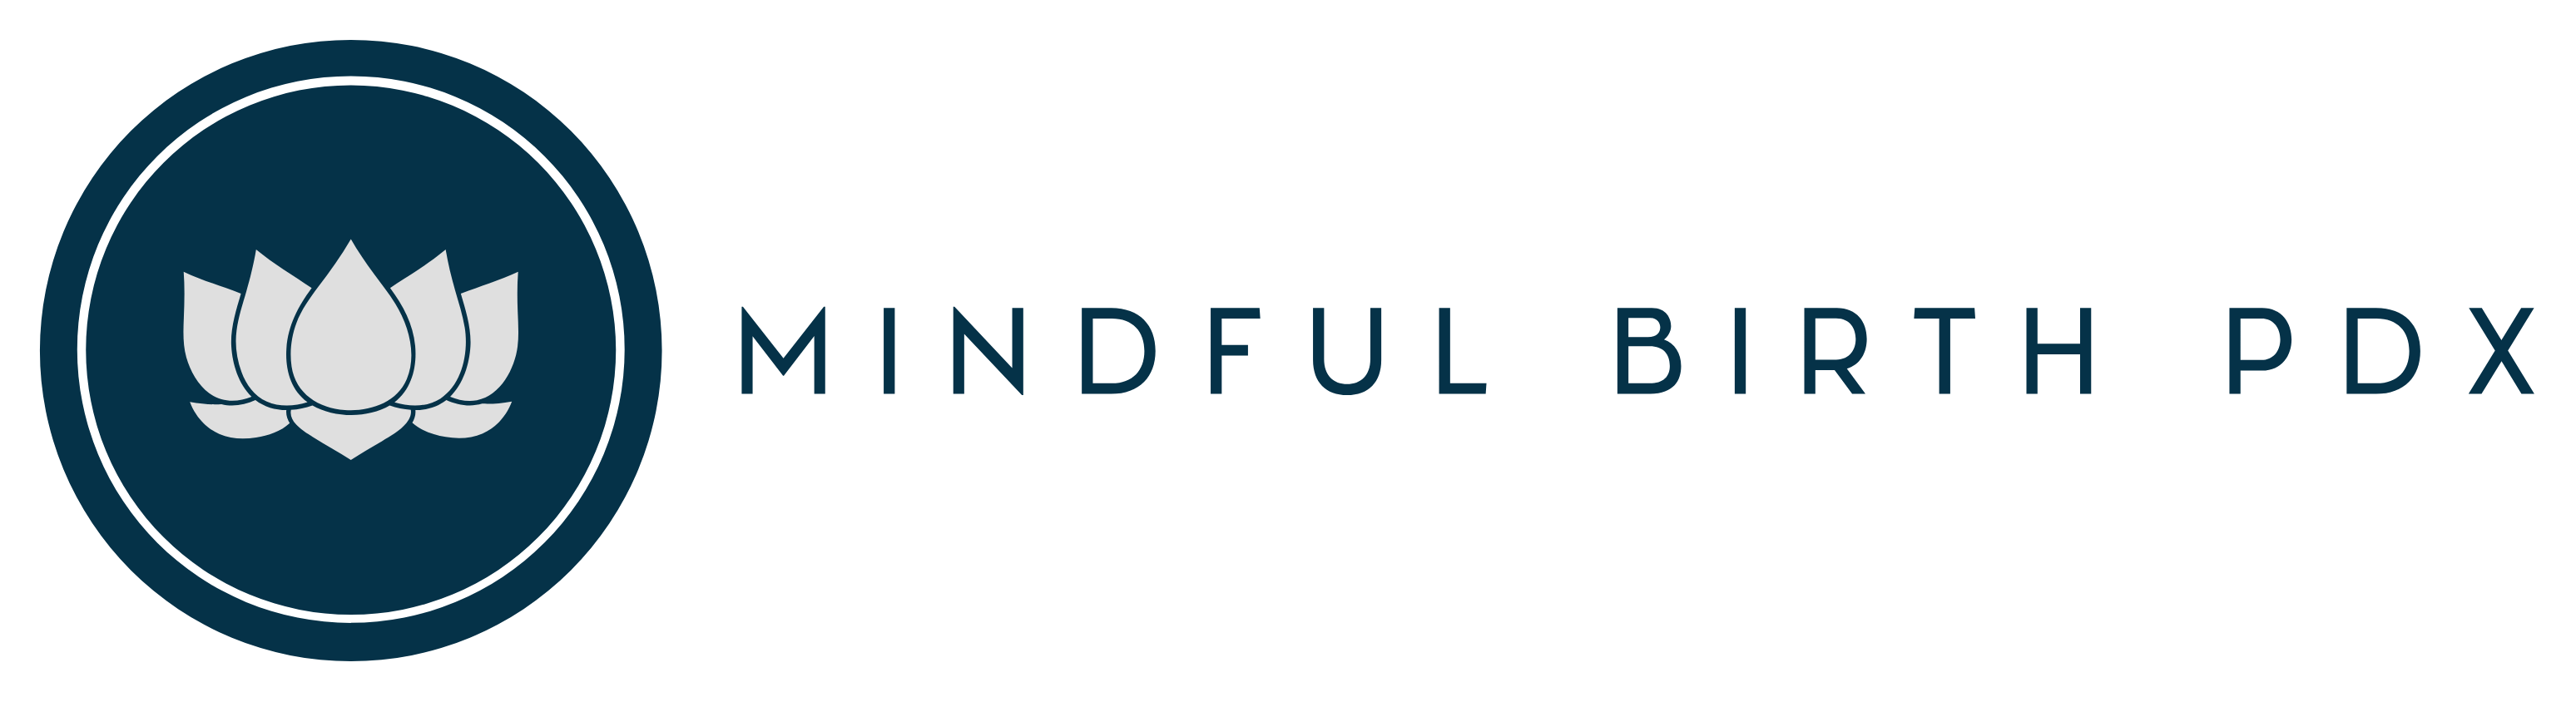 Mindful Birth PDX